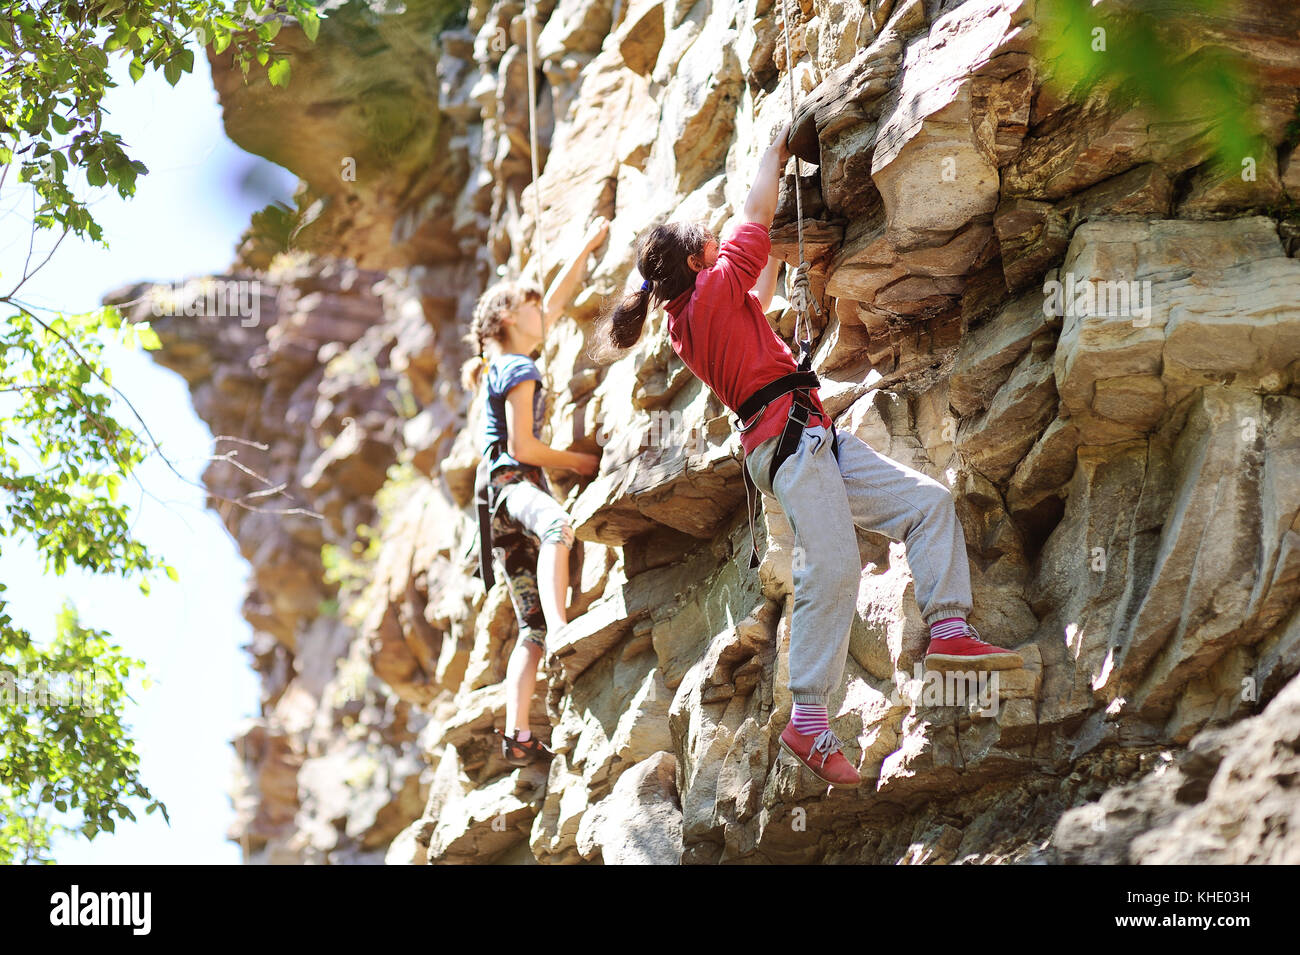 Two teenage girls are engaged in rock climbing - Stock Image